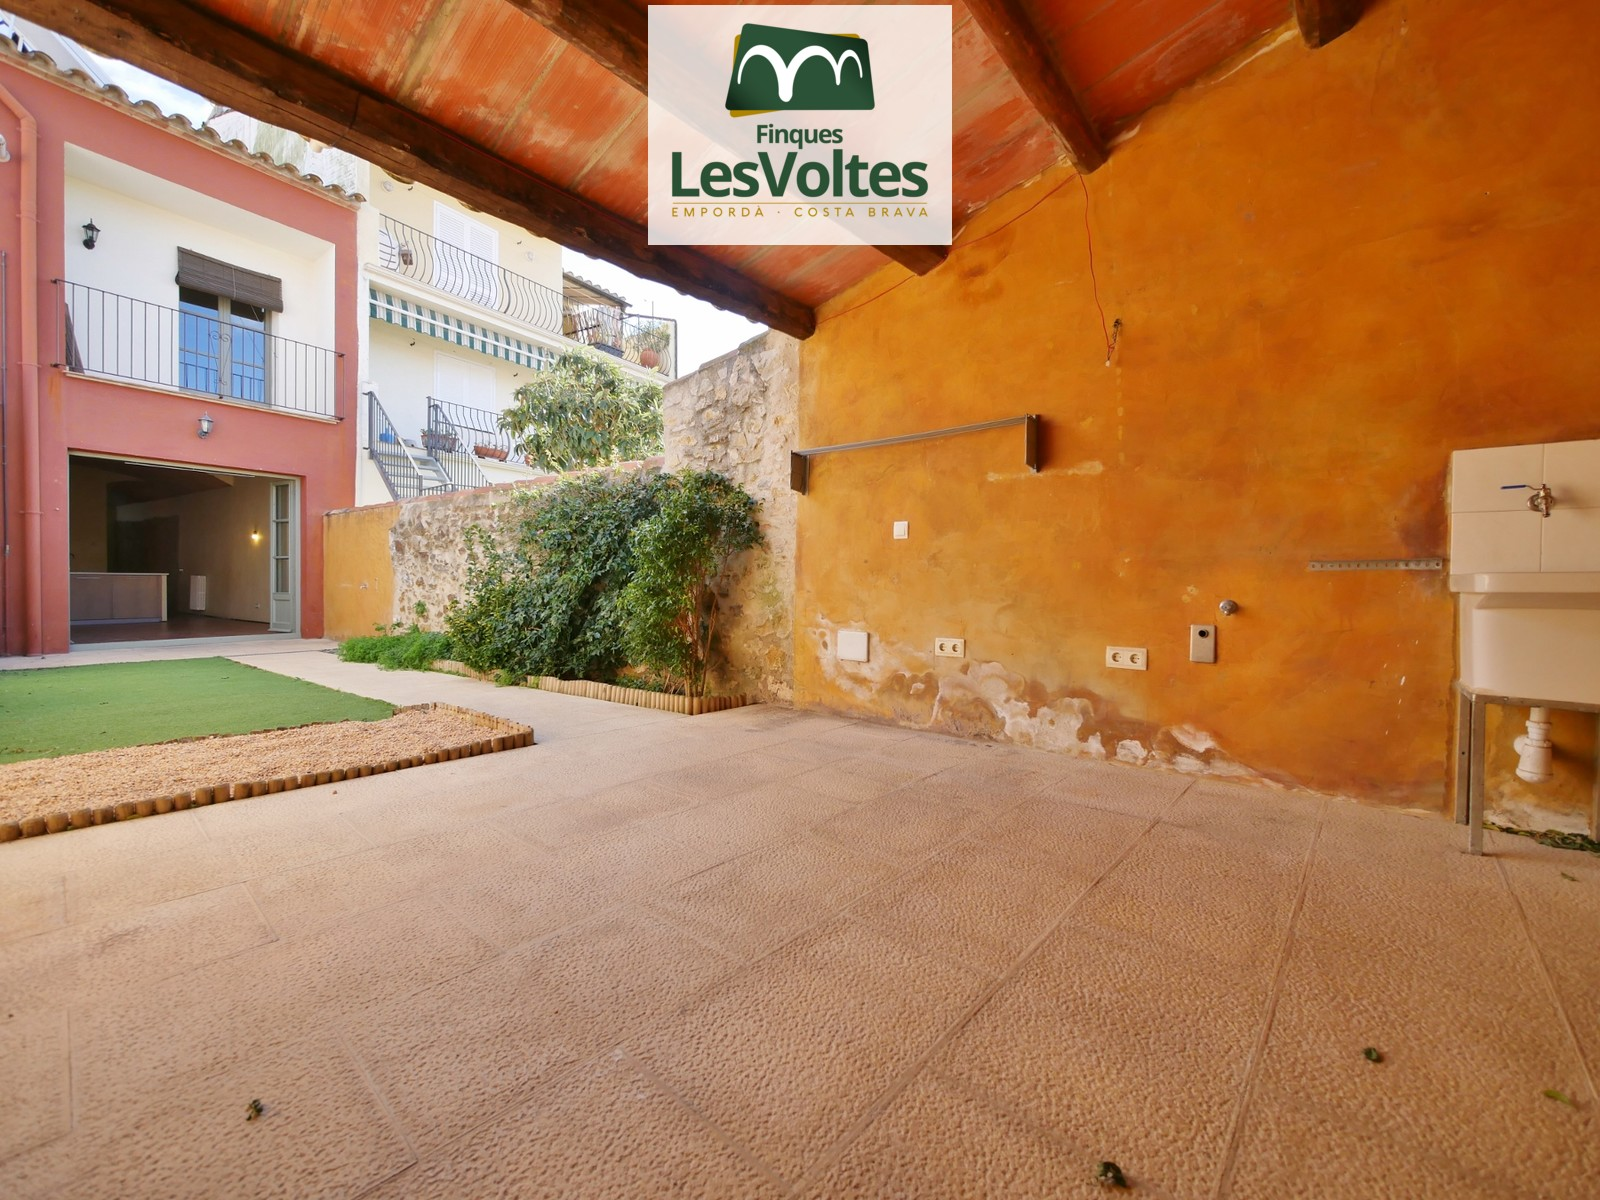 Rustic house with interior patio for rent in Palafrugell. Impeccable reform ready to enter.